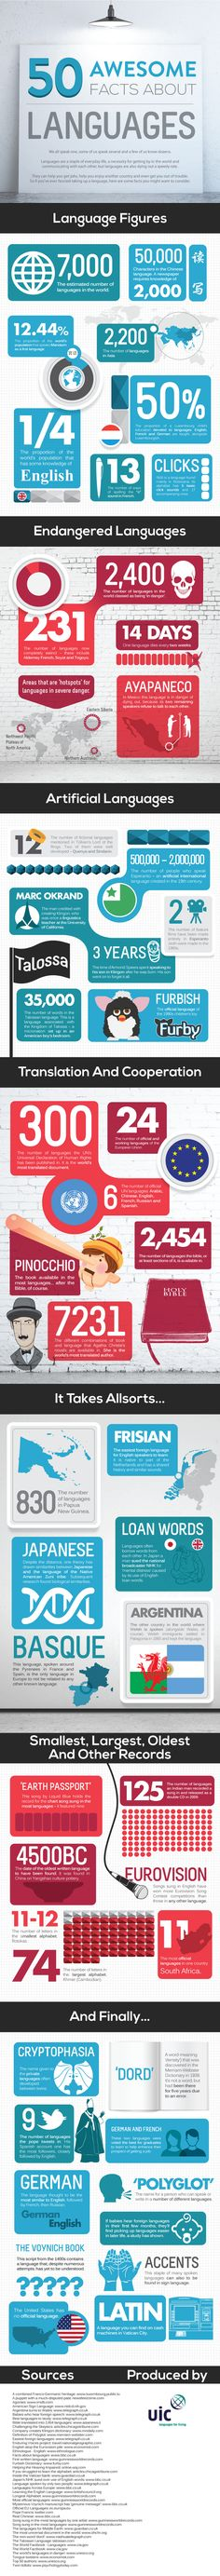 50-awesome-facts-about-languages-infographic